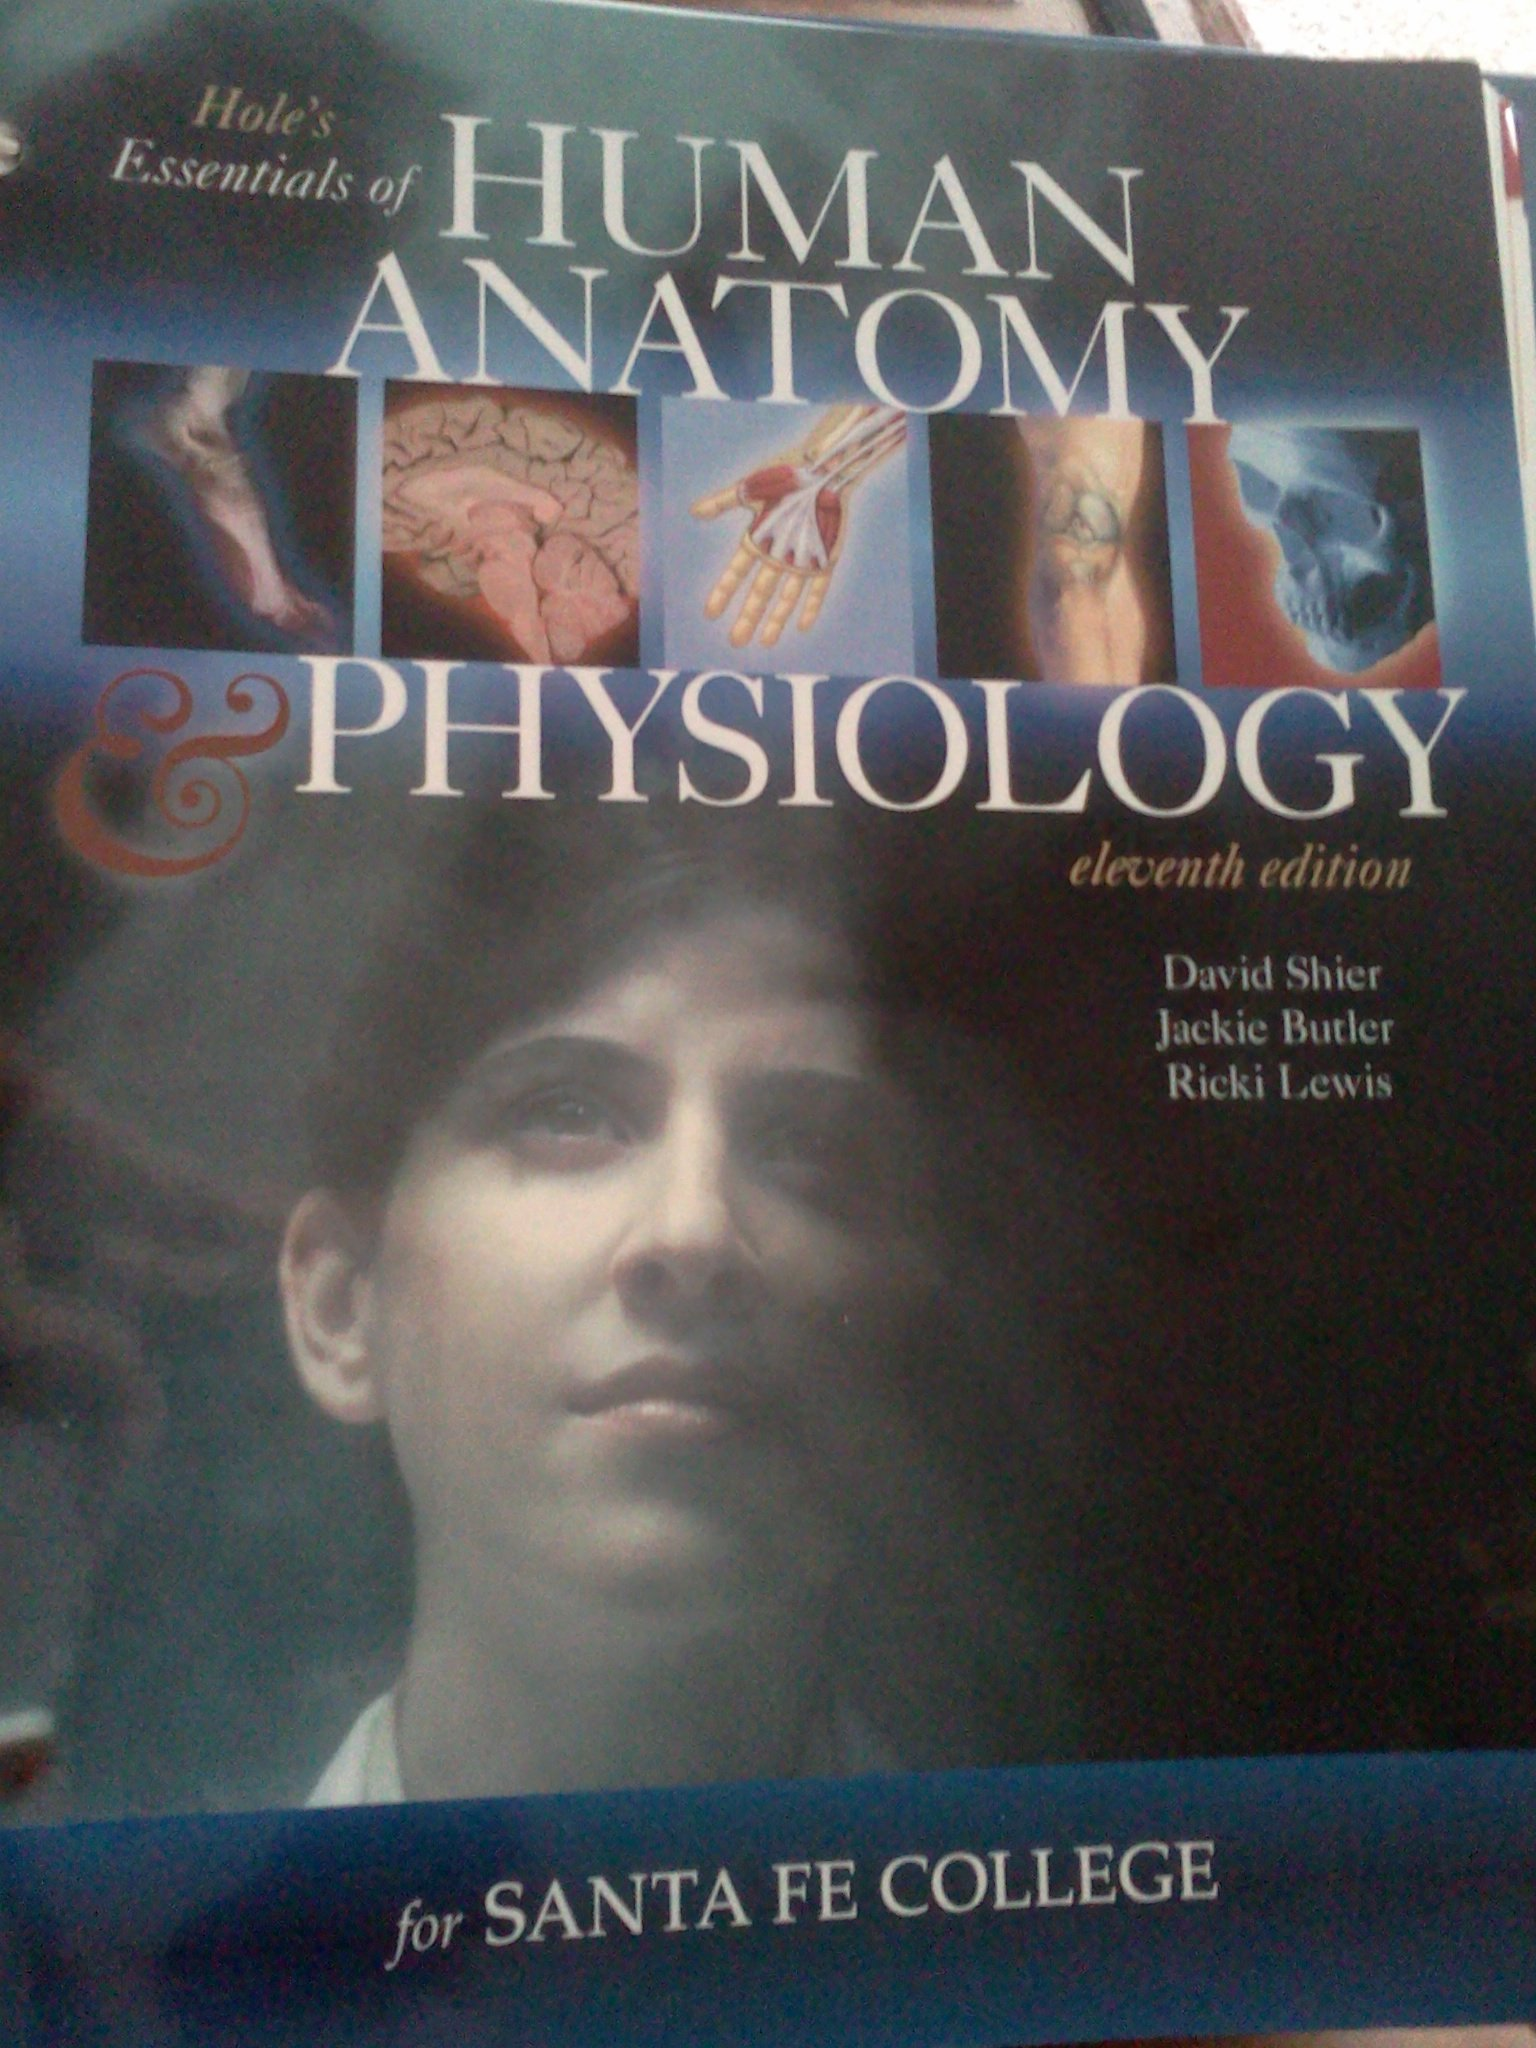 Holes Essentials Of Human Anatomy Physiology Eleventh Edition